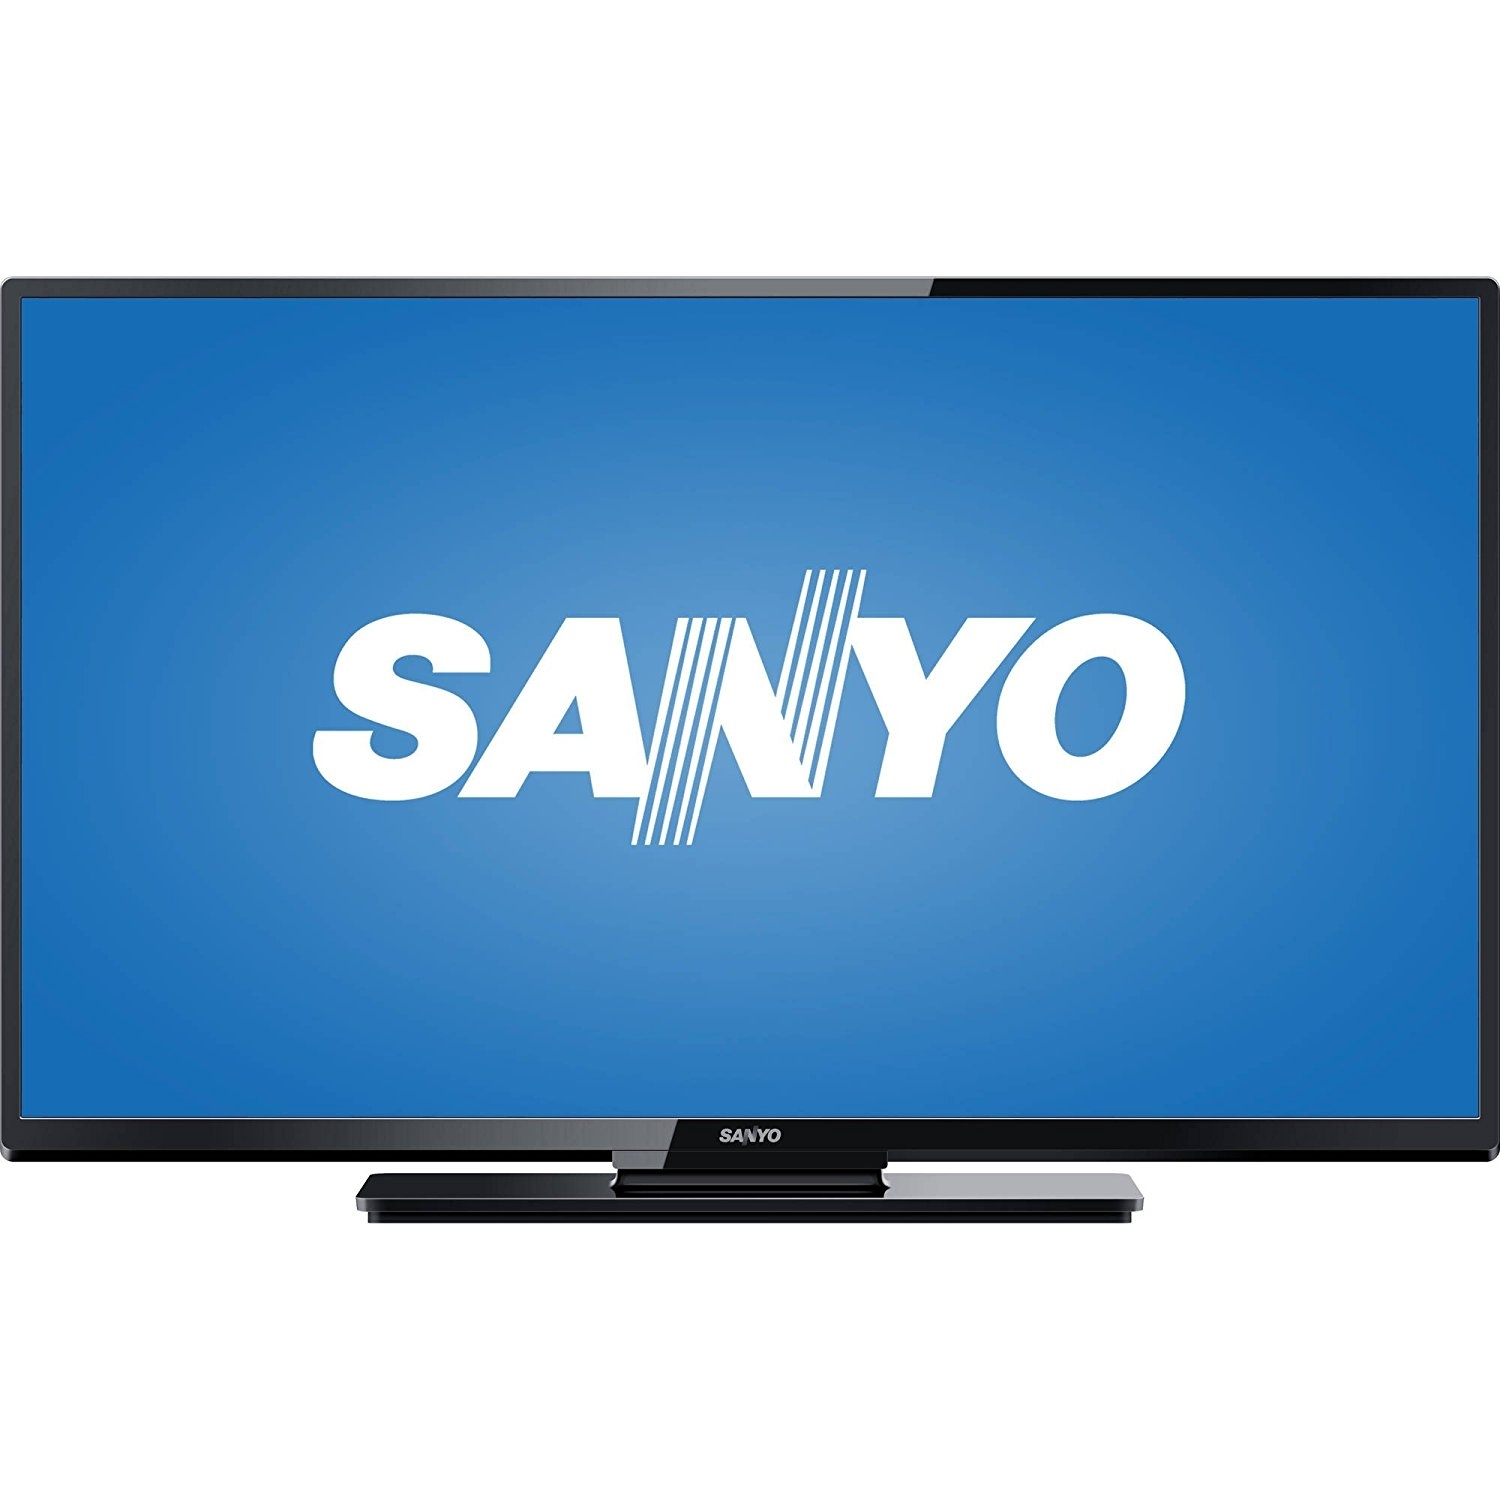 "Sanyo FW43D25F 1080P 43"" LCD TV, BLACK (Certified )"